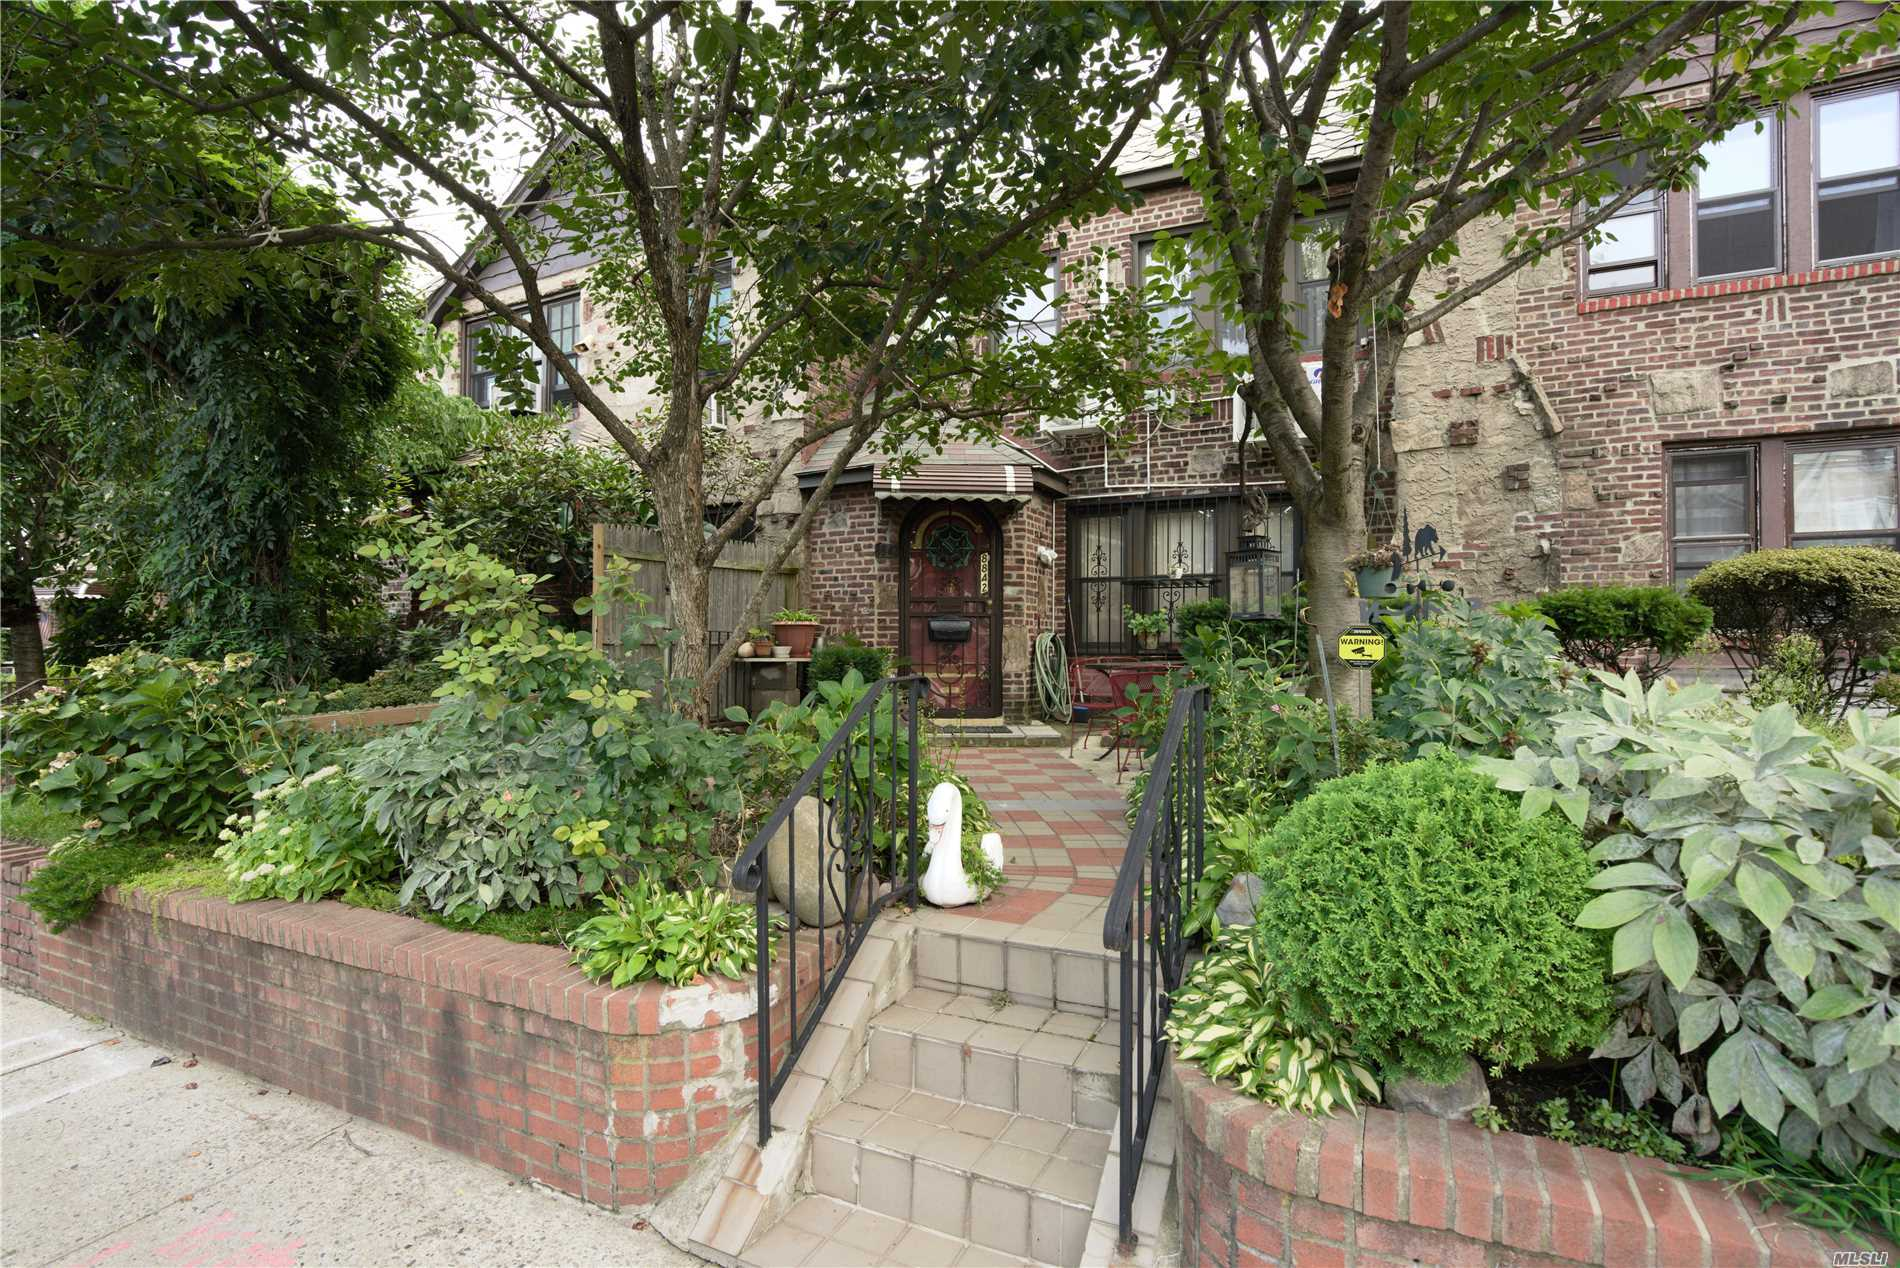 Beautiful Brick Tudor Townhouse. Excellent Condition With Updated Kitchen And Bathrooms. Hardwood Floor Throughout. Ductless Split A/C. Finished Basement. 4 Bedrooms, 2 Full Baths, Det. Garage. Very Good School District. Minutes Away From The R, M Train Station And Shopping Centers. Must See!!!